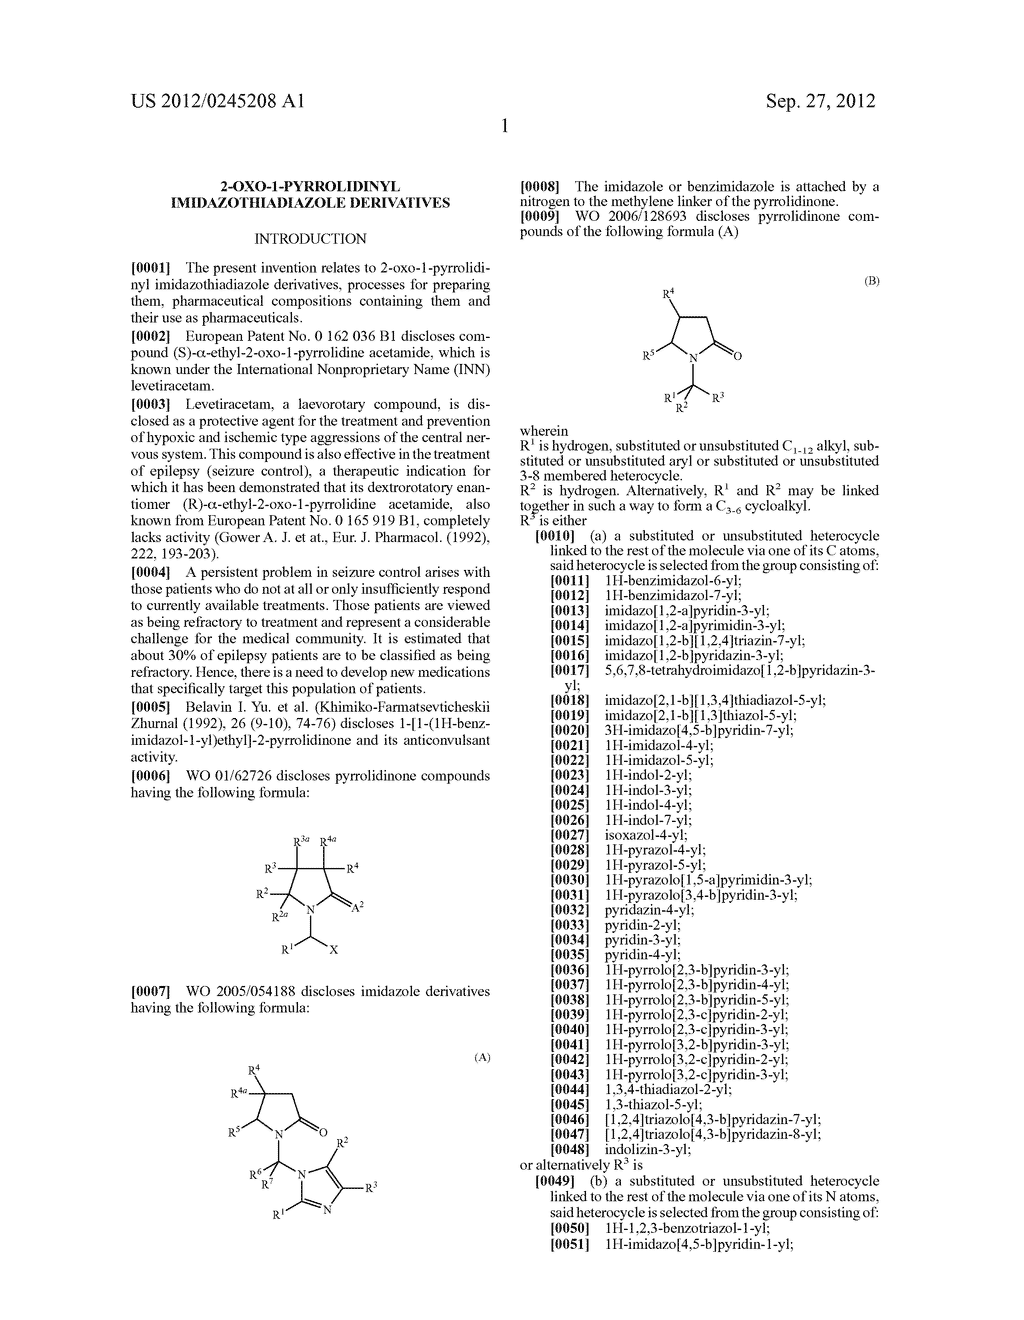 2-Oxo-1-Pyrrolidinyl Imidazothiadiazole Derivatives - diagram, schematic, and image 02